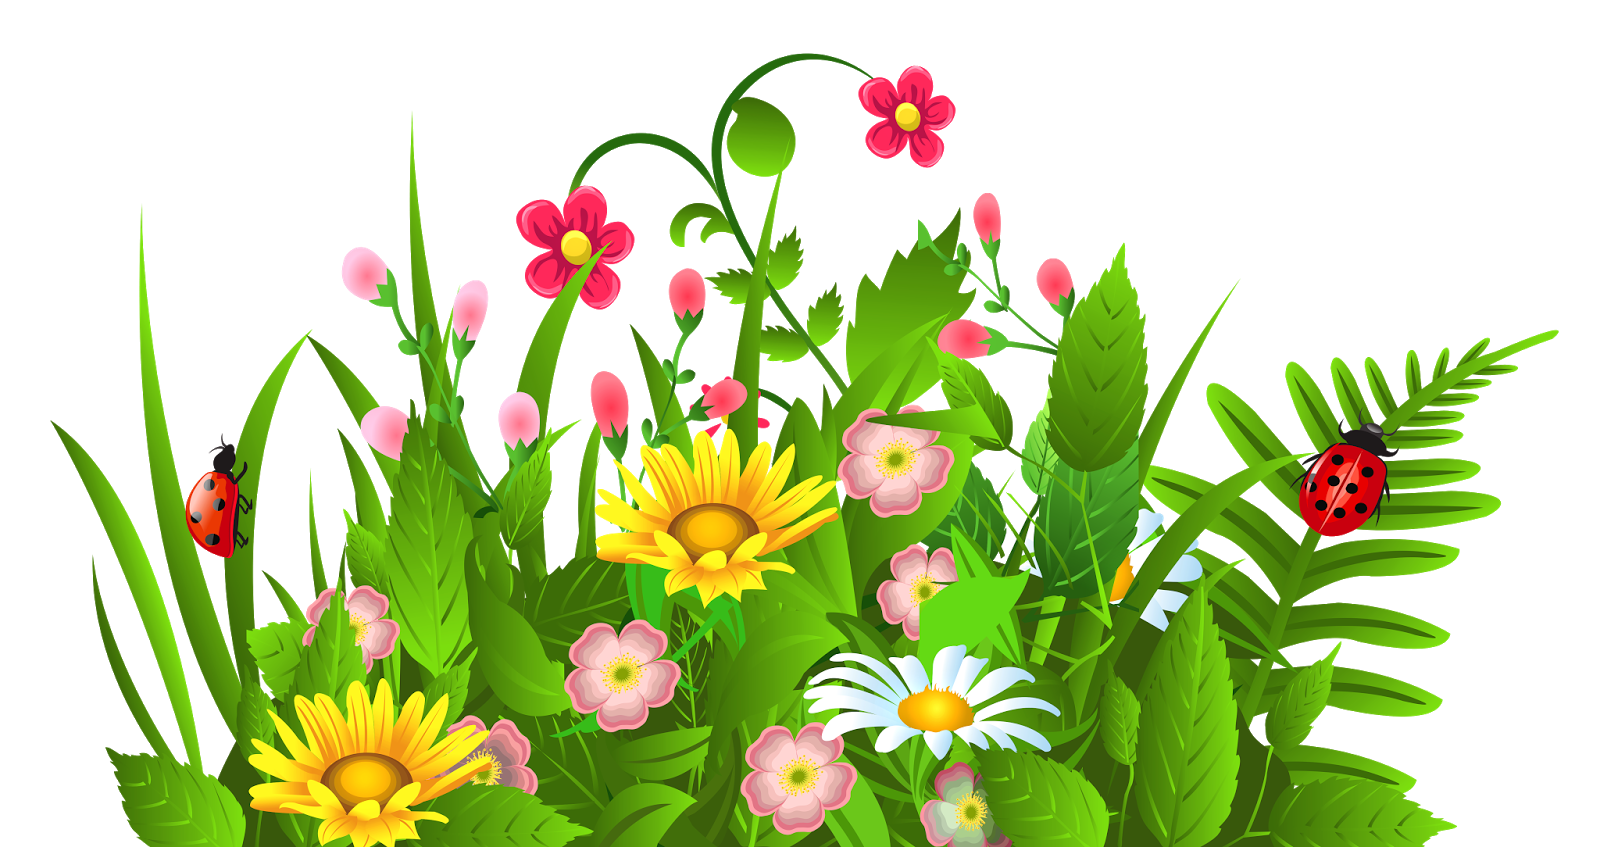 Free flower cliparts download. Flowers in the garden clipart